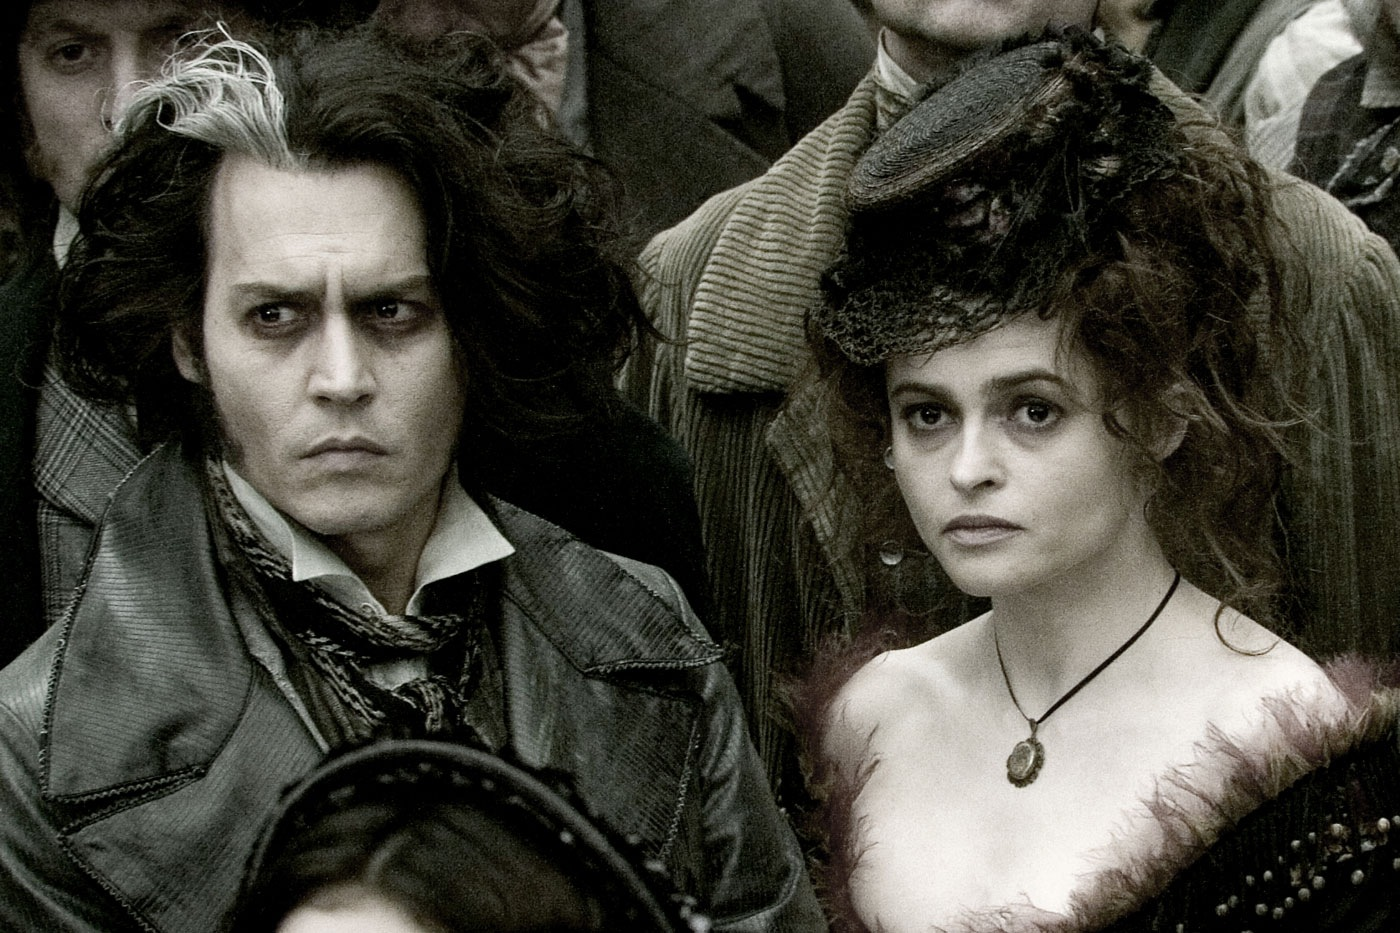 Sweeney Todd (Johnny Depp) and Mrs Lovett (Helena Bonham Carter) in Sweeney Todd: The Demon Barber of Fleet Street (2007)